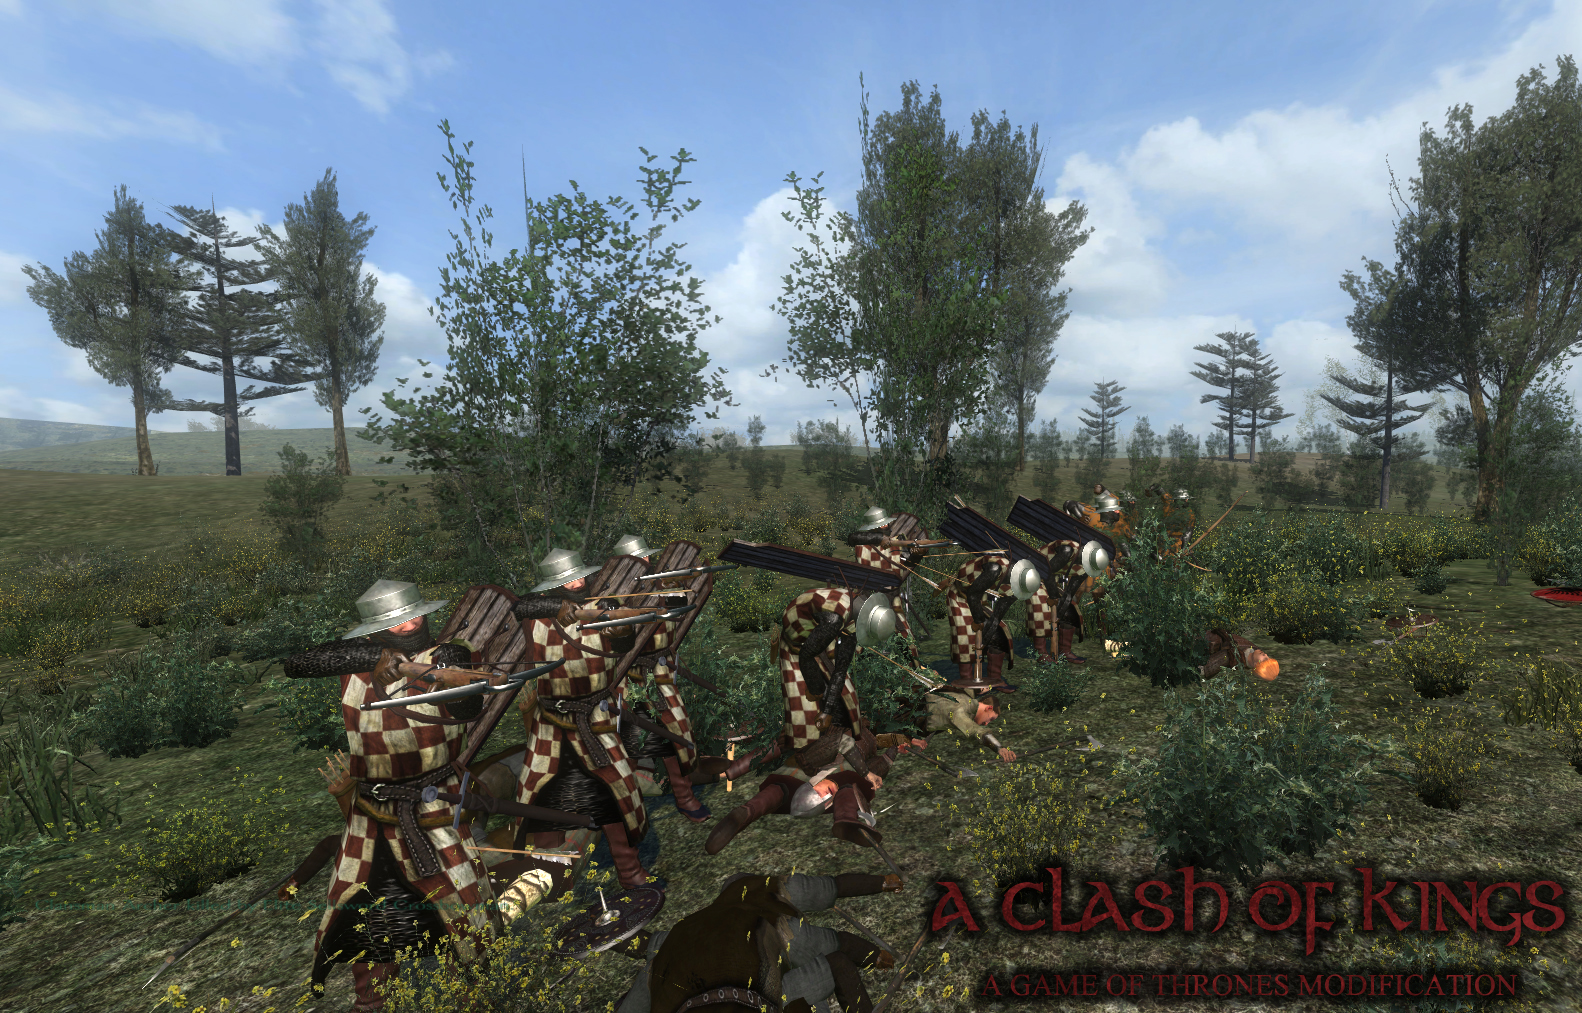 Crossbowmen Image A Clash Of Kings Game Of Thrones Mod For Mount Blade Warband Mod Db